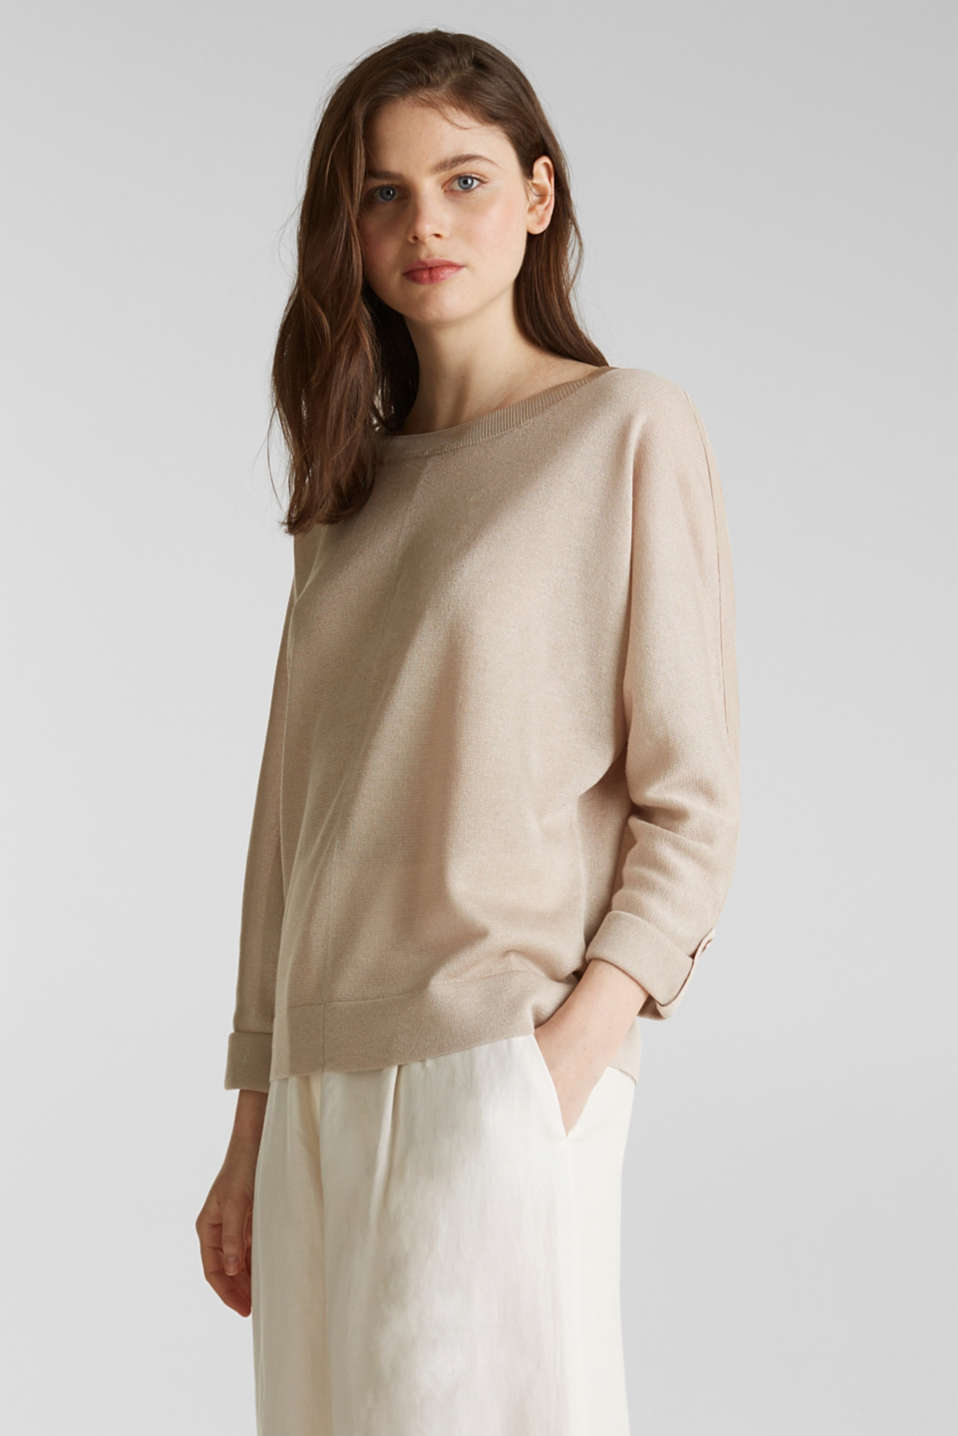 Jumper with batwing sleeves made of crêpe yarn, LIGHT BEIGE, detail image number 5